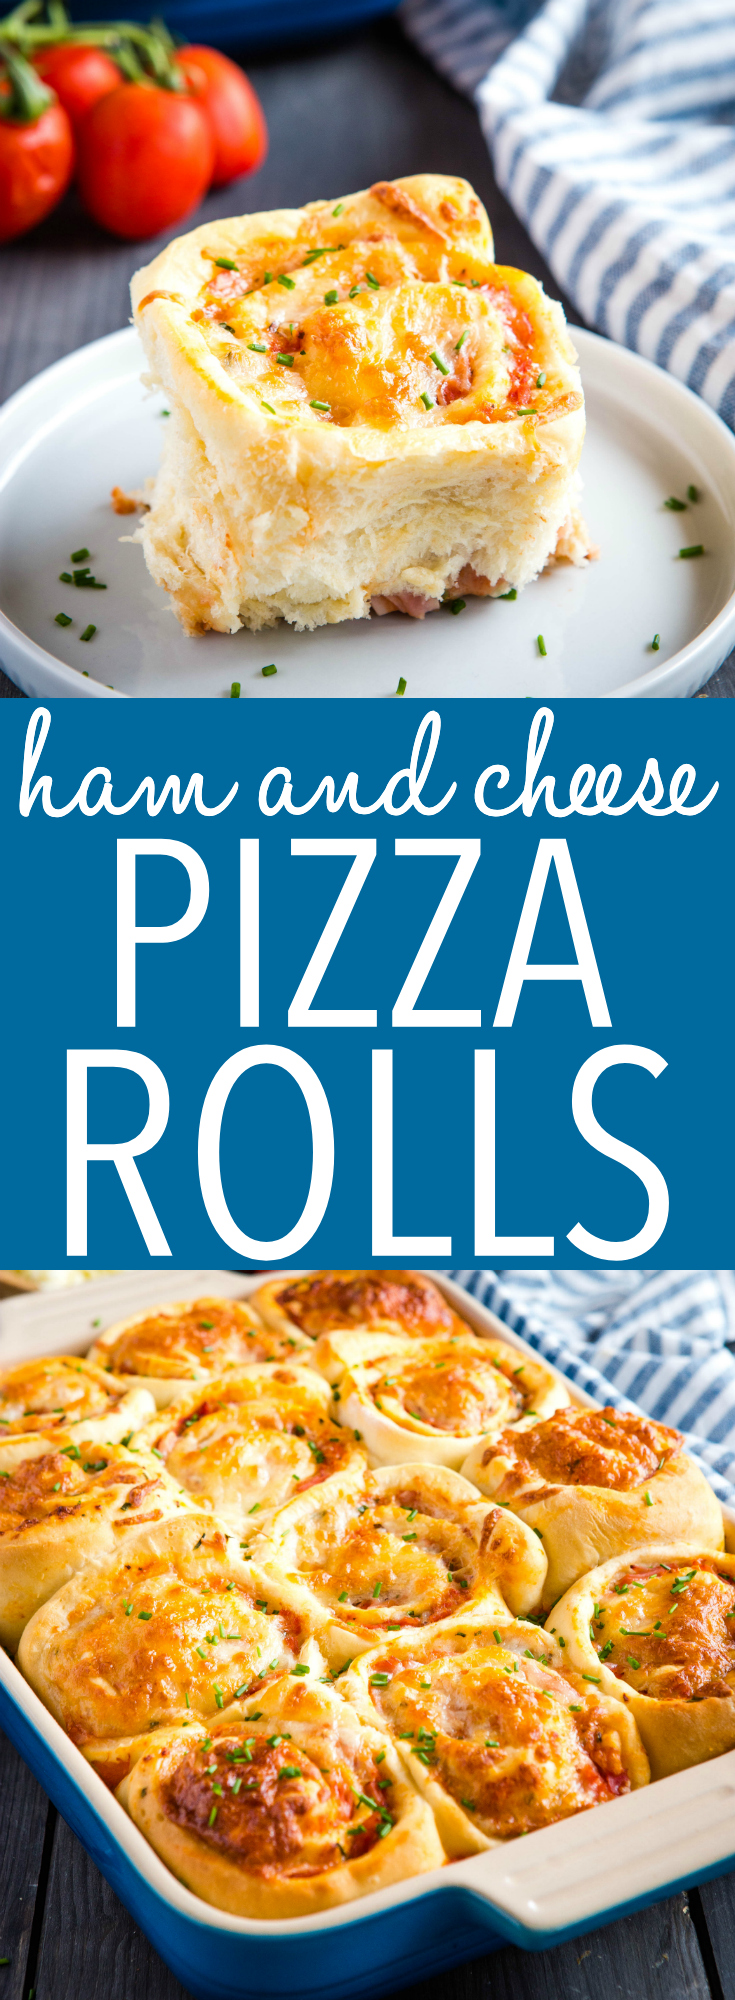 ham and cheese pizza rolls pinterest